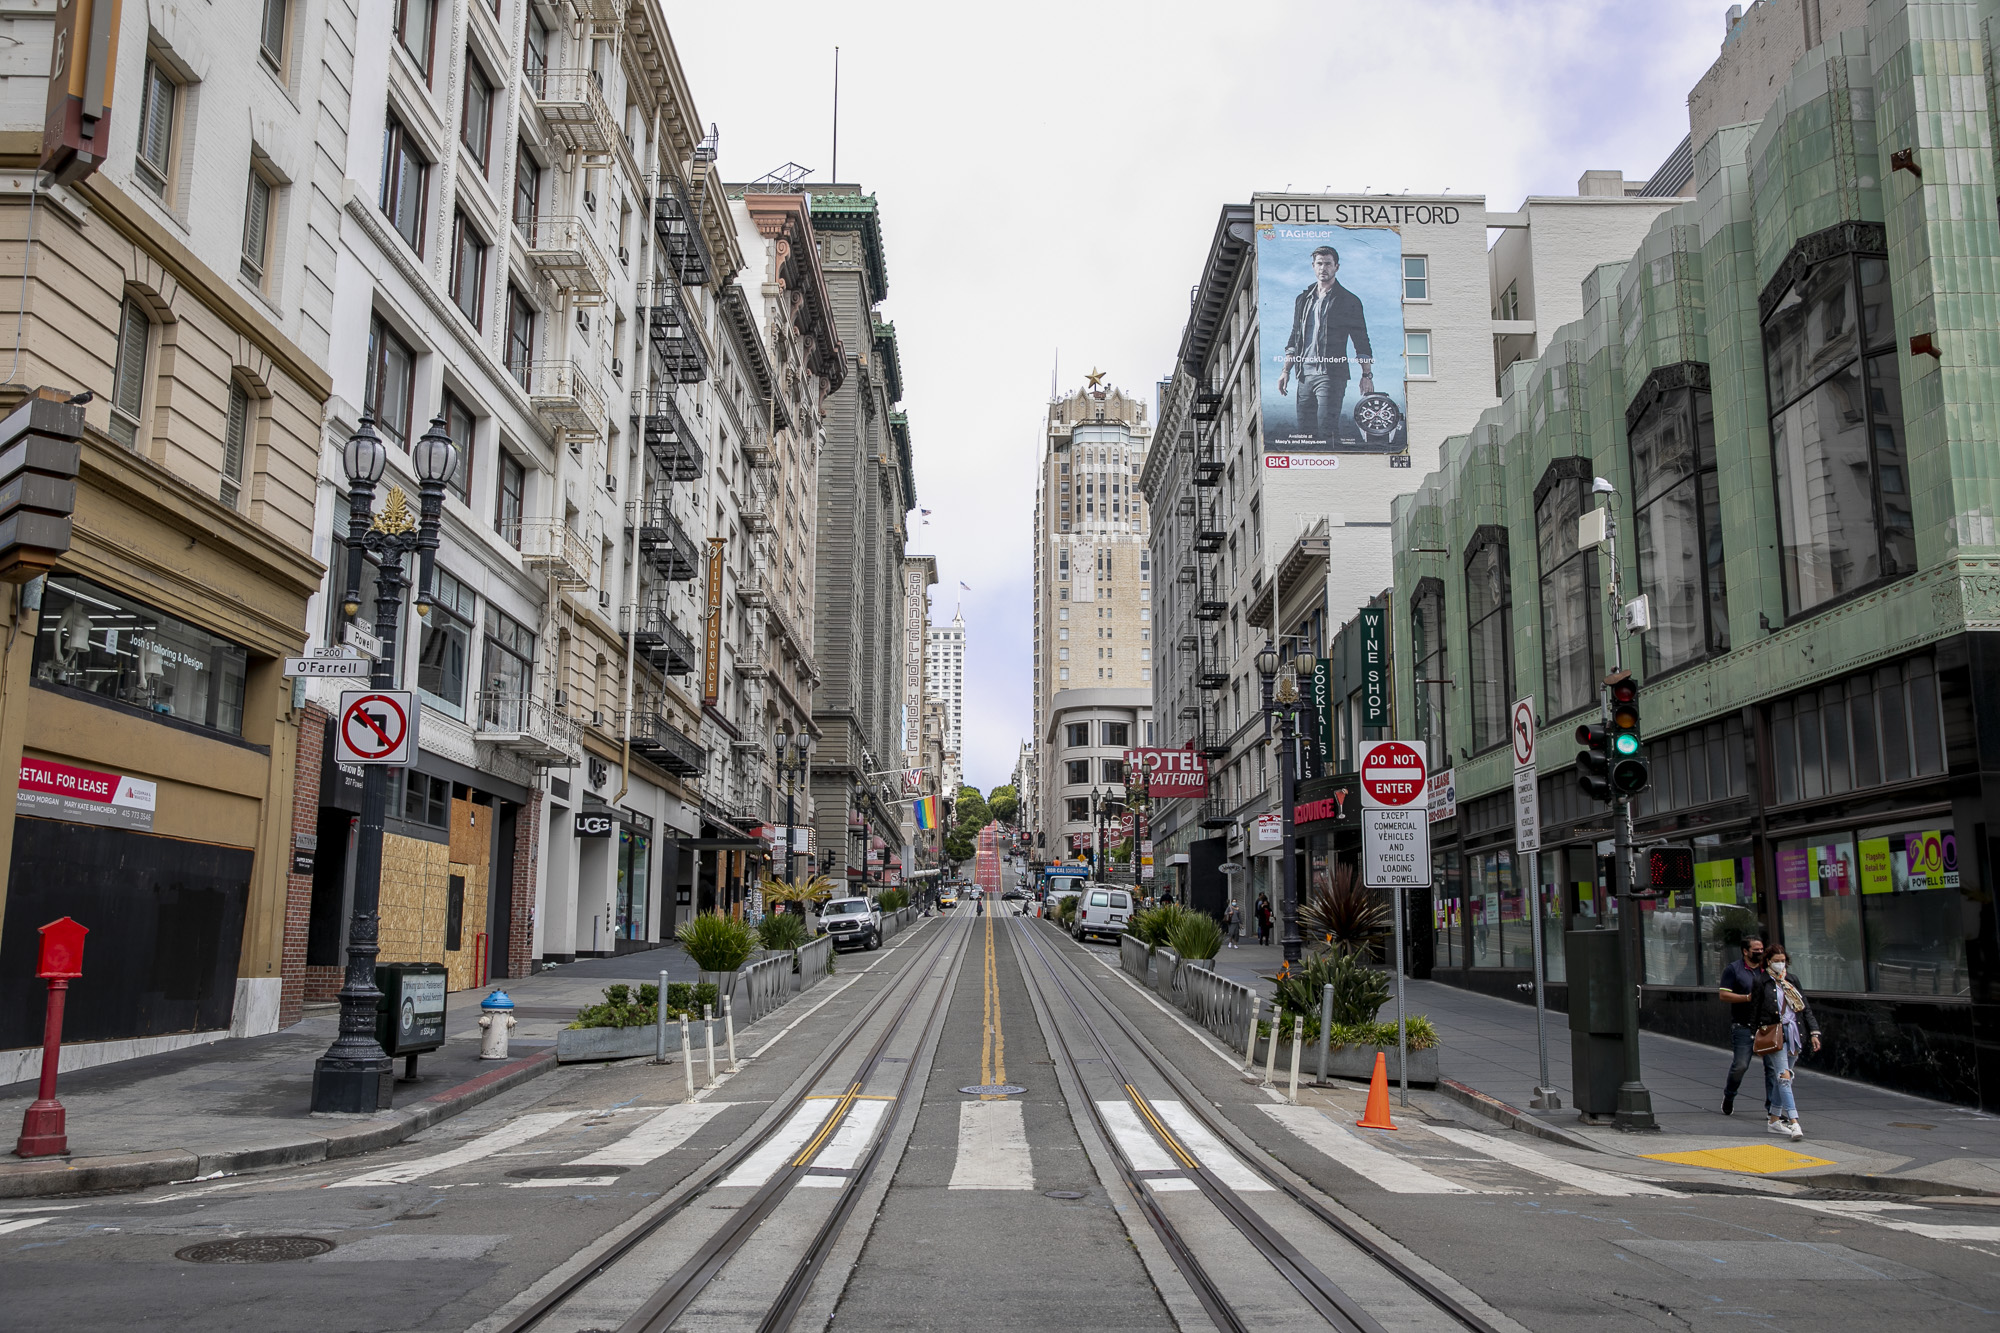 Pedestrians walk past vacant store fronts along Powell Street in the Union Square shopping district in San Francisco on June 14, 2021. Photo by Anne Wernikoff, CalMatters